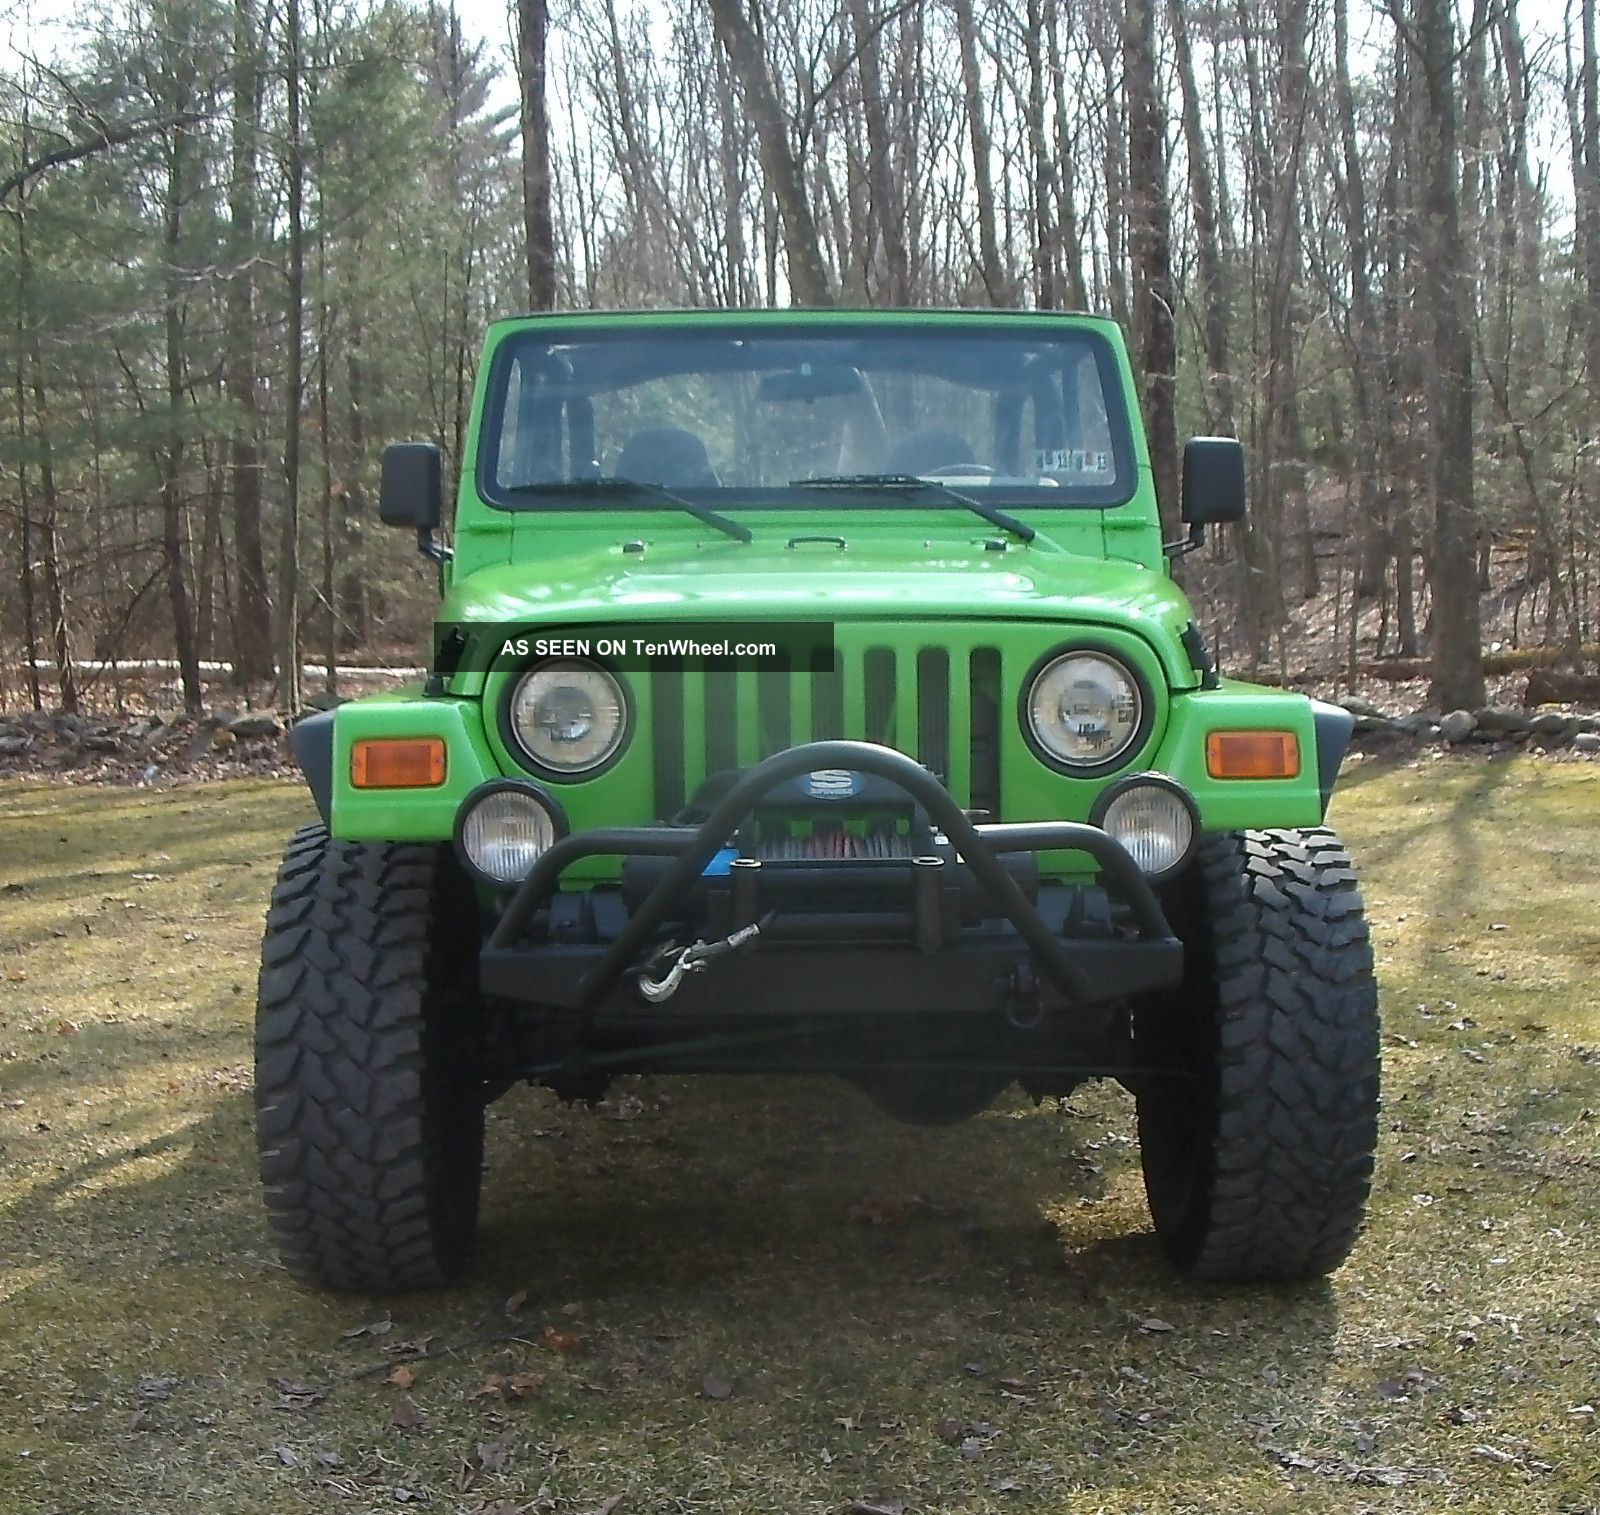 2004 Land Rover Discovery Se Sport Utility 4 Door Green On: 2001 Jeep Wrangler 4. 0l Neon Green (lifted) 3 Day